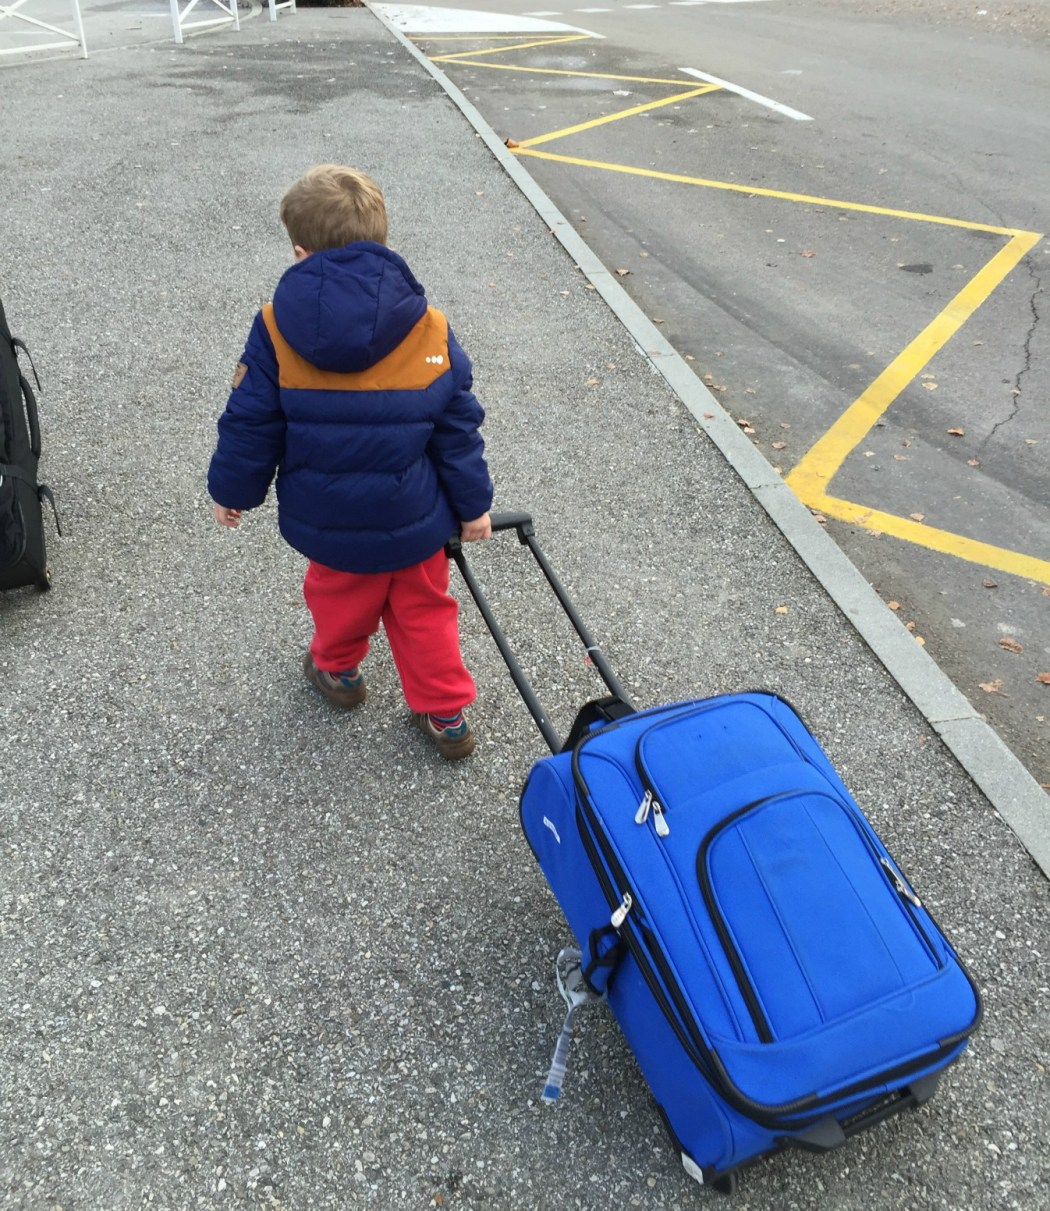 Tinks with suitcase